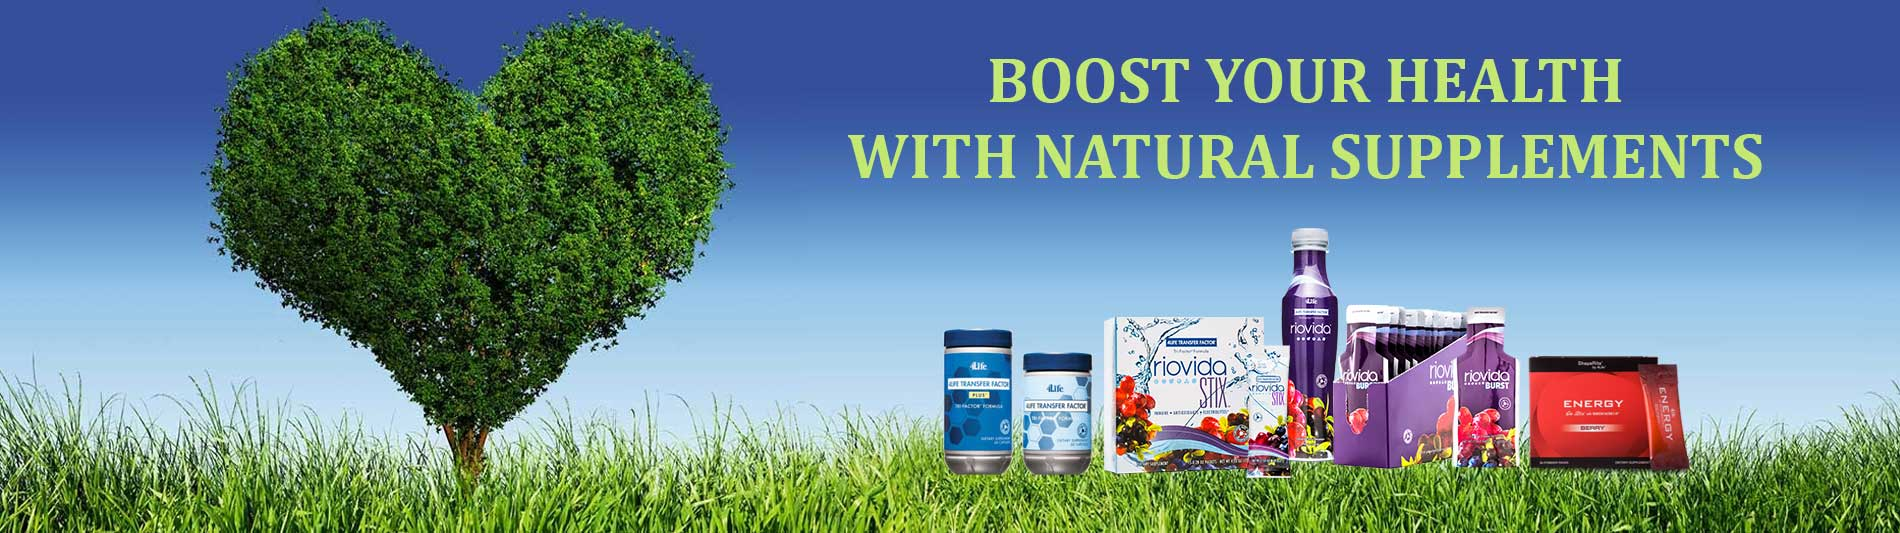 immune health supplements online store